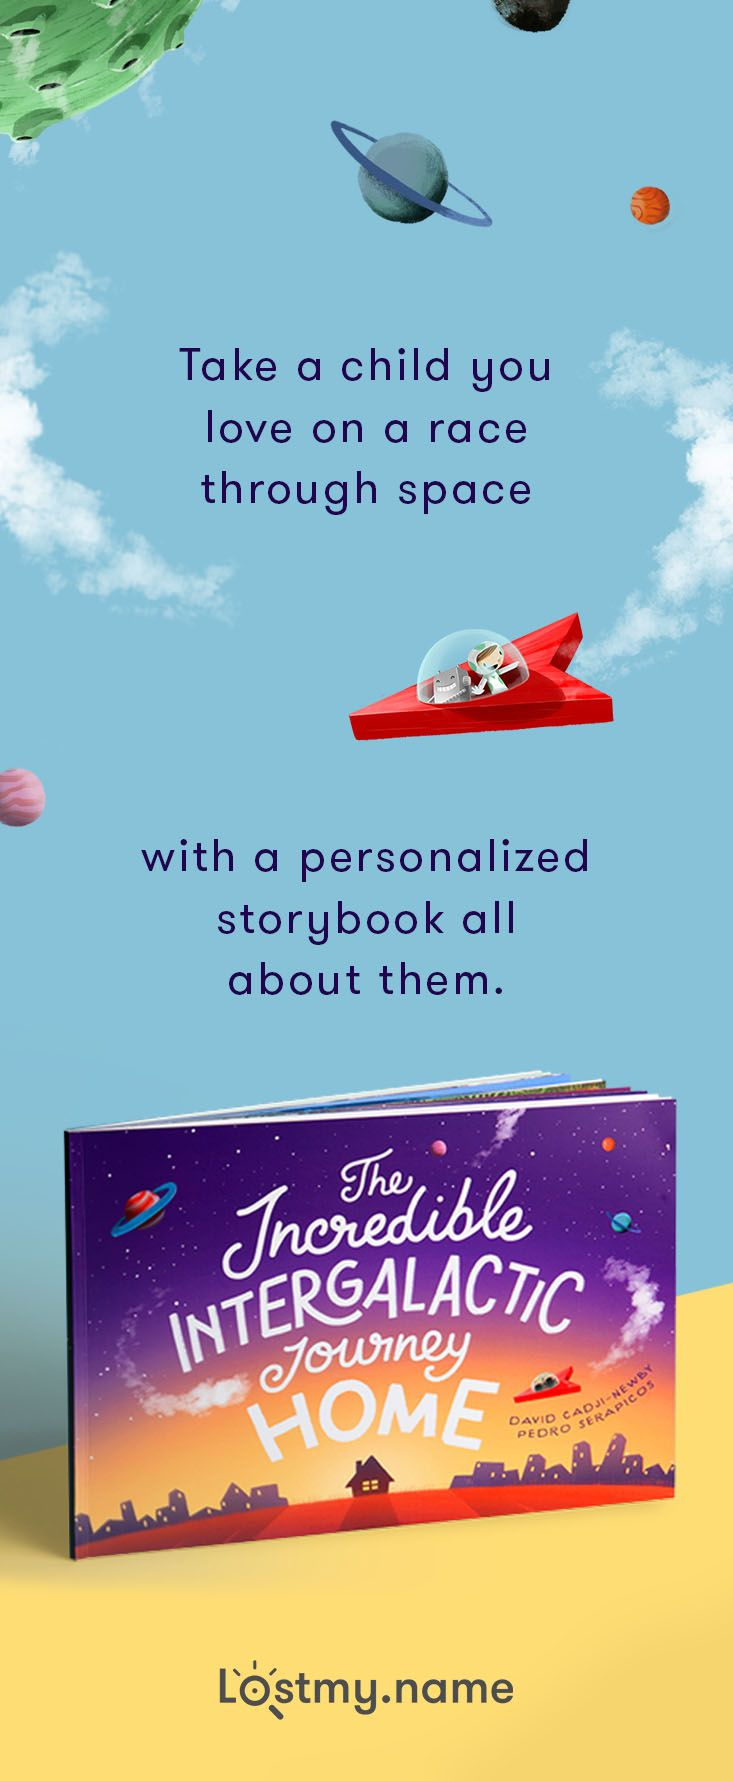 Take a child on an unforgettable adventure! The Incredible Intergalactic Journey Home is a magical personalized storybook that whooshes your child through the galaxy (to see their name in the stars!) right back to their own front door. Order today and you can even enjoy free shipping.